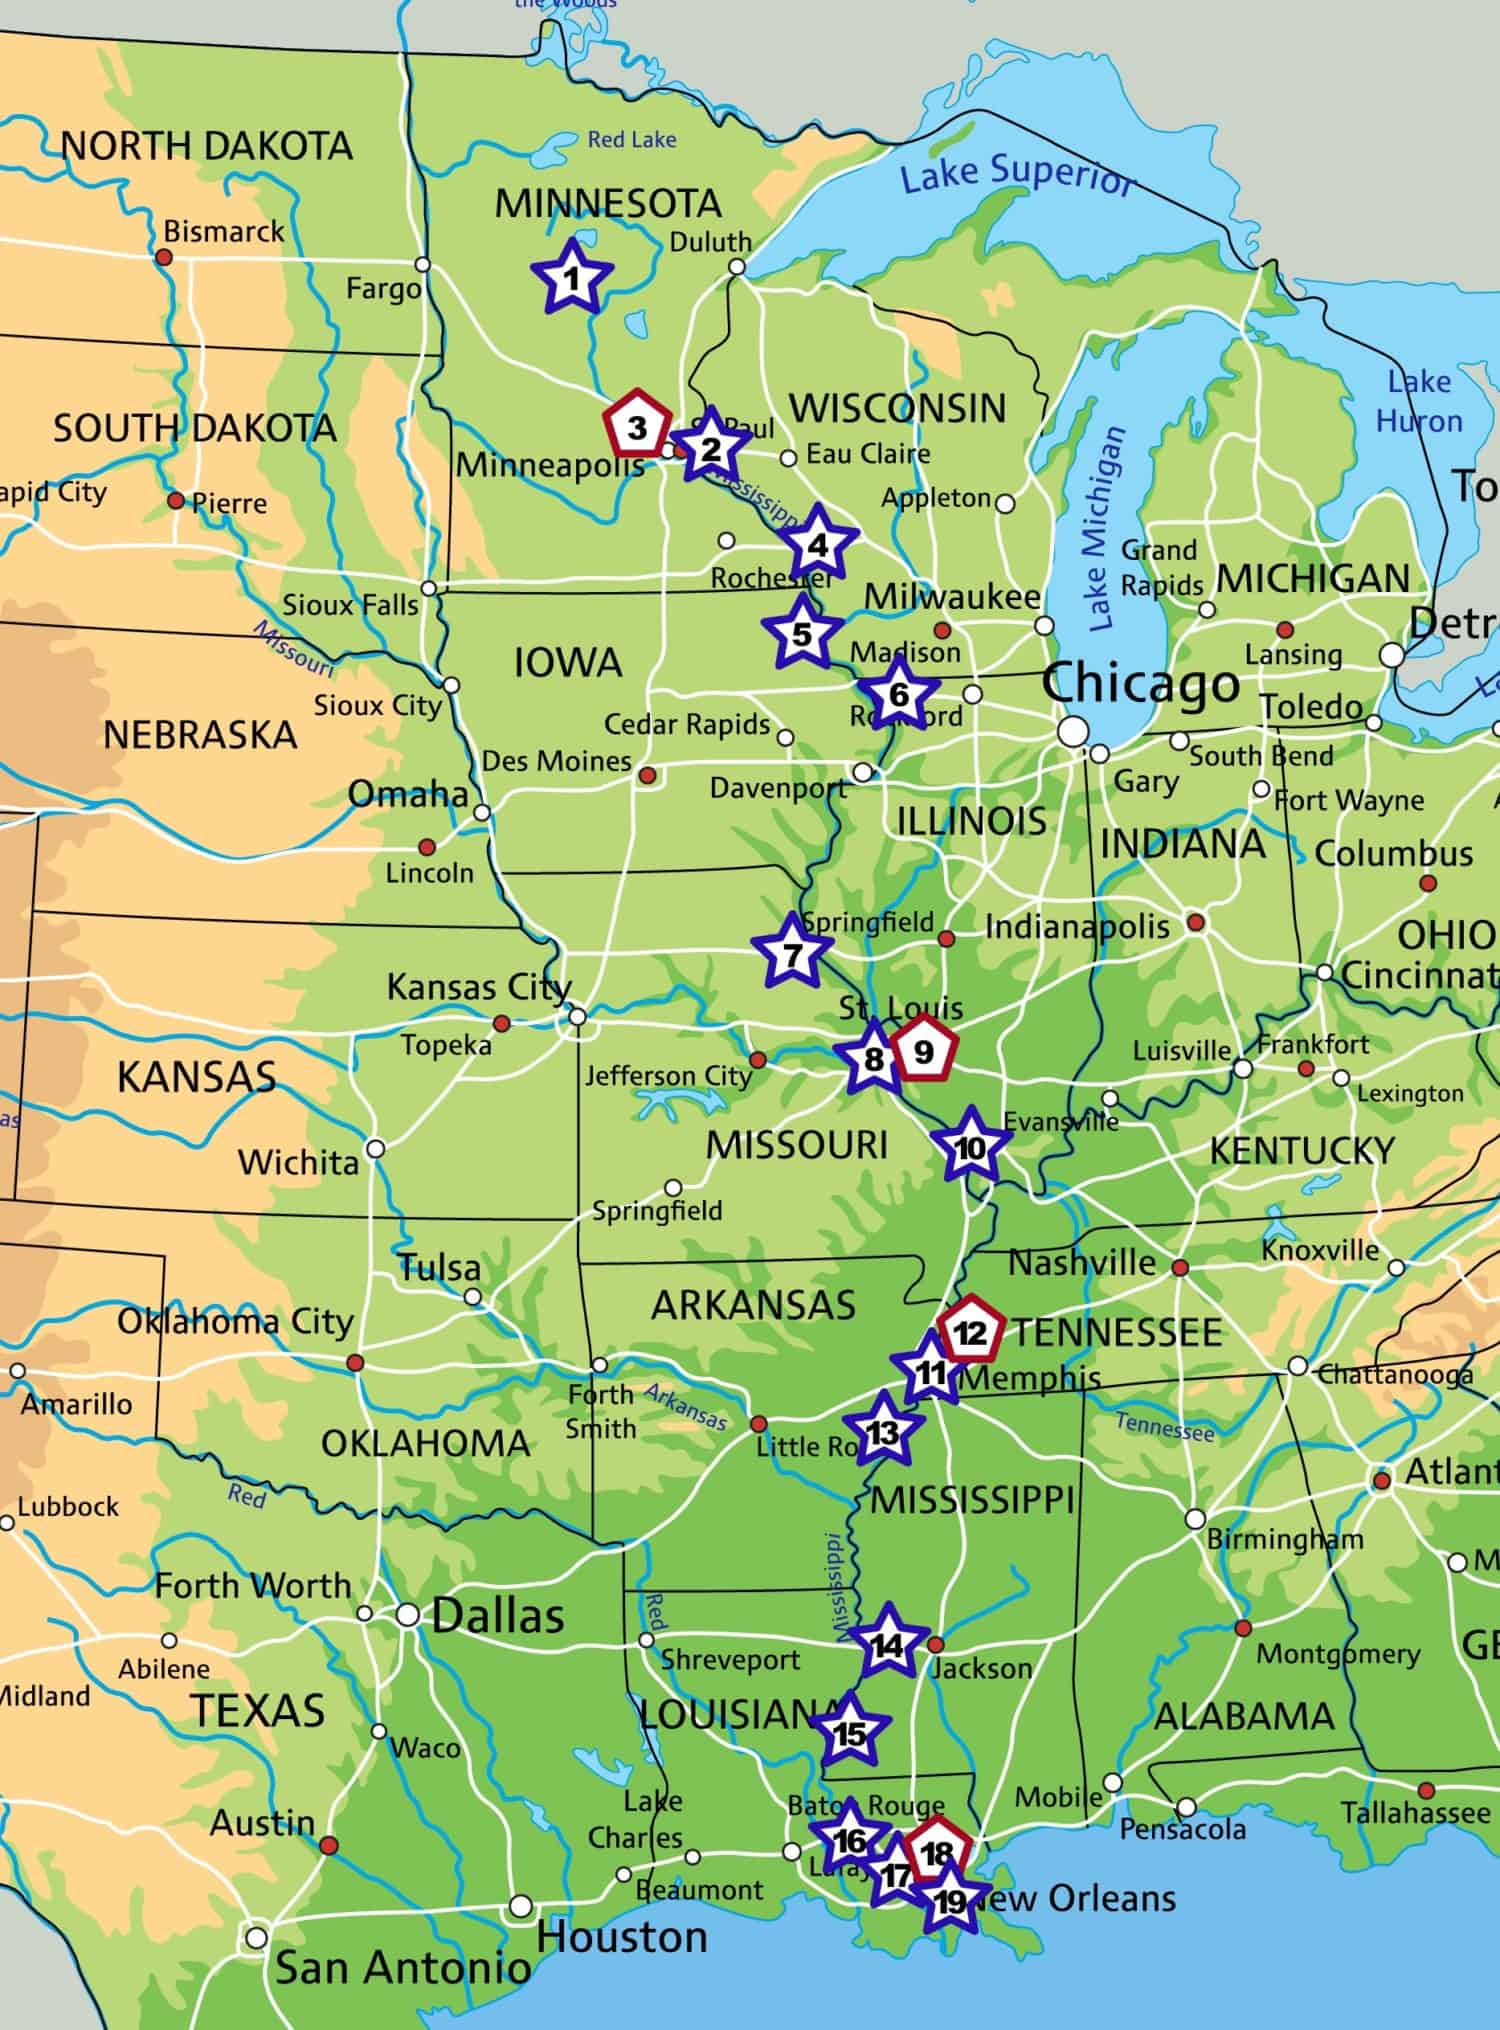 Road map showing pet stops on Great River Road from Minneapolis, Minnesota to New Orleans, Louisiana